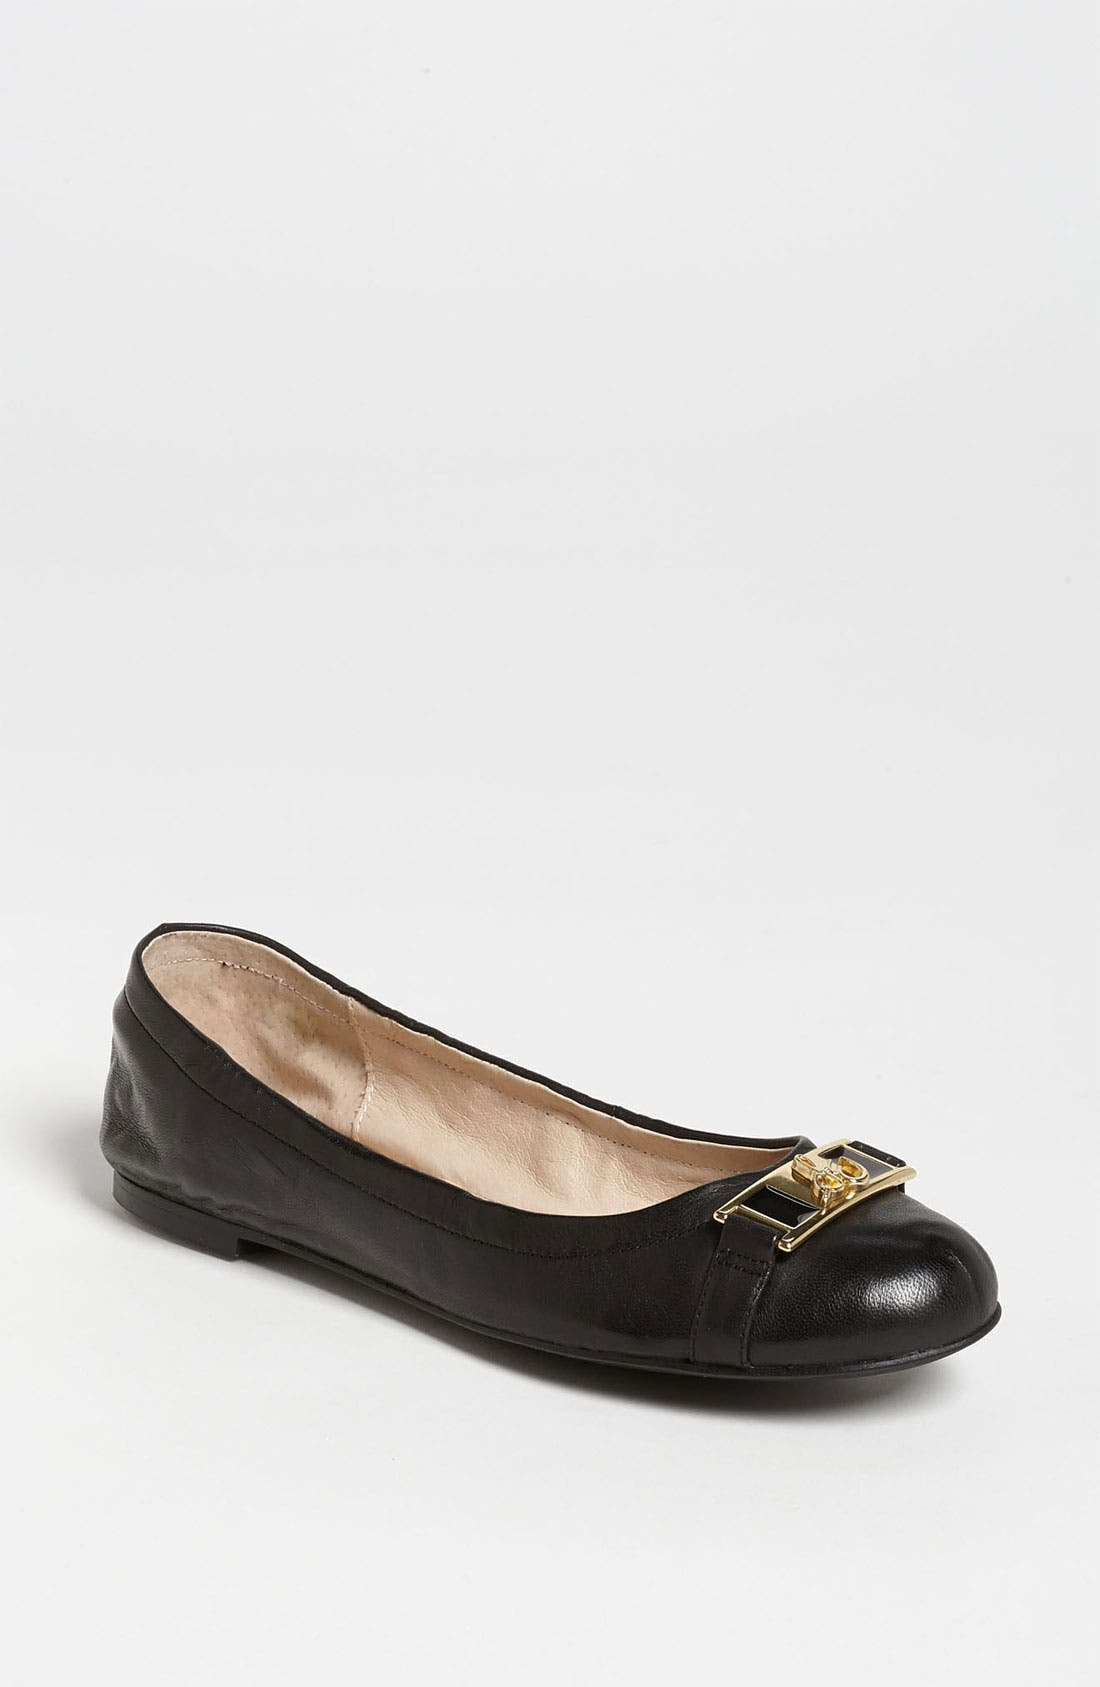 Main Image - Sam Edelman 'Betty' Flat